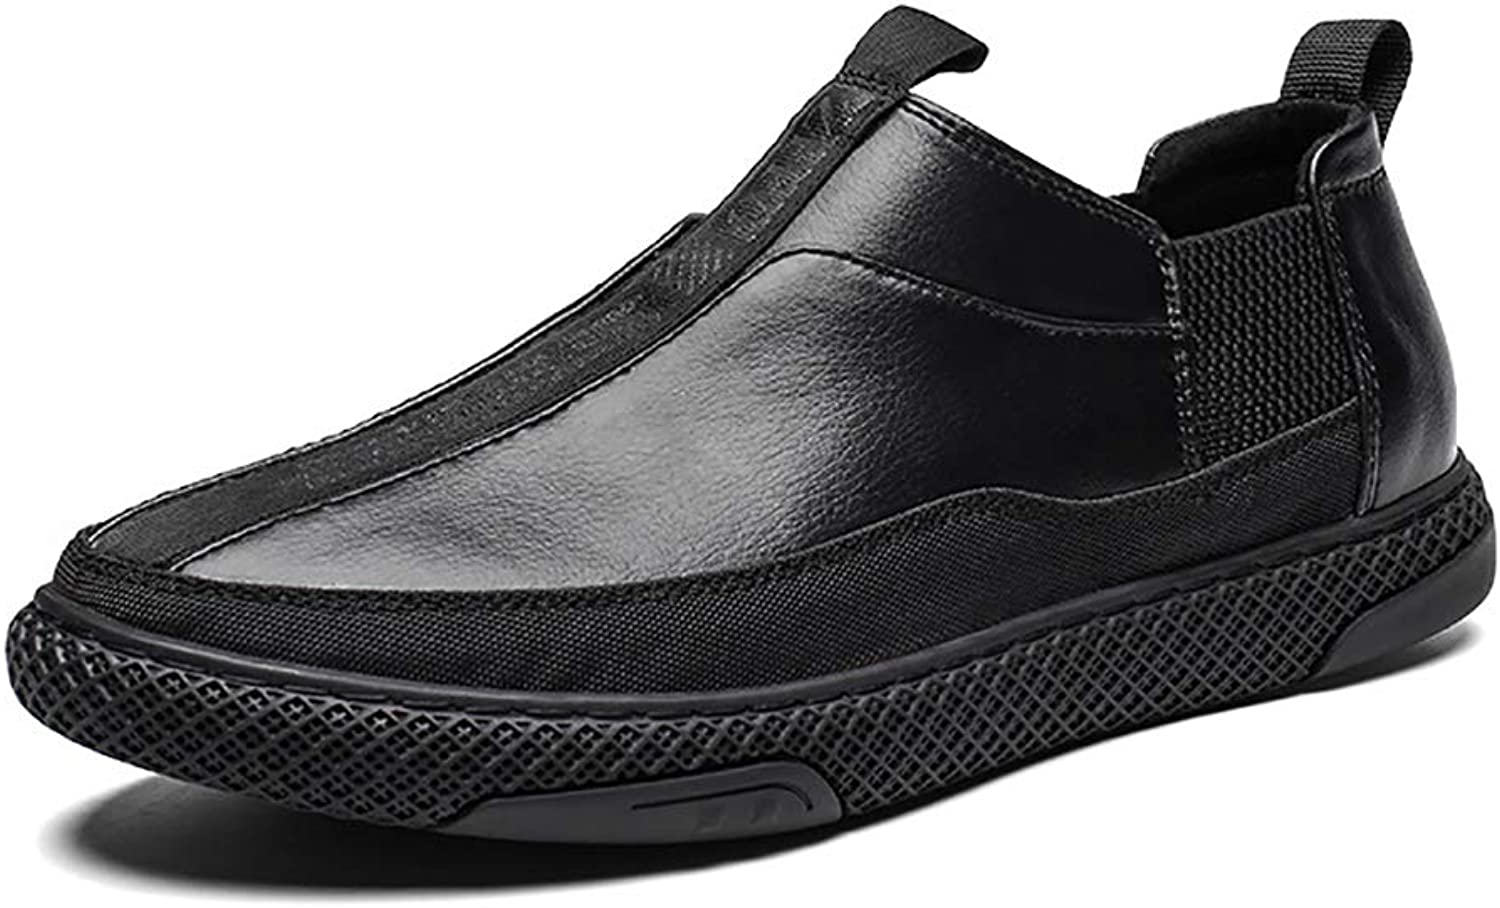 Men's Low-Cut Leather Casual shoes, Non-Slip, Lightweight, Comfortable, Fashion, Sports shoes